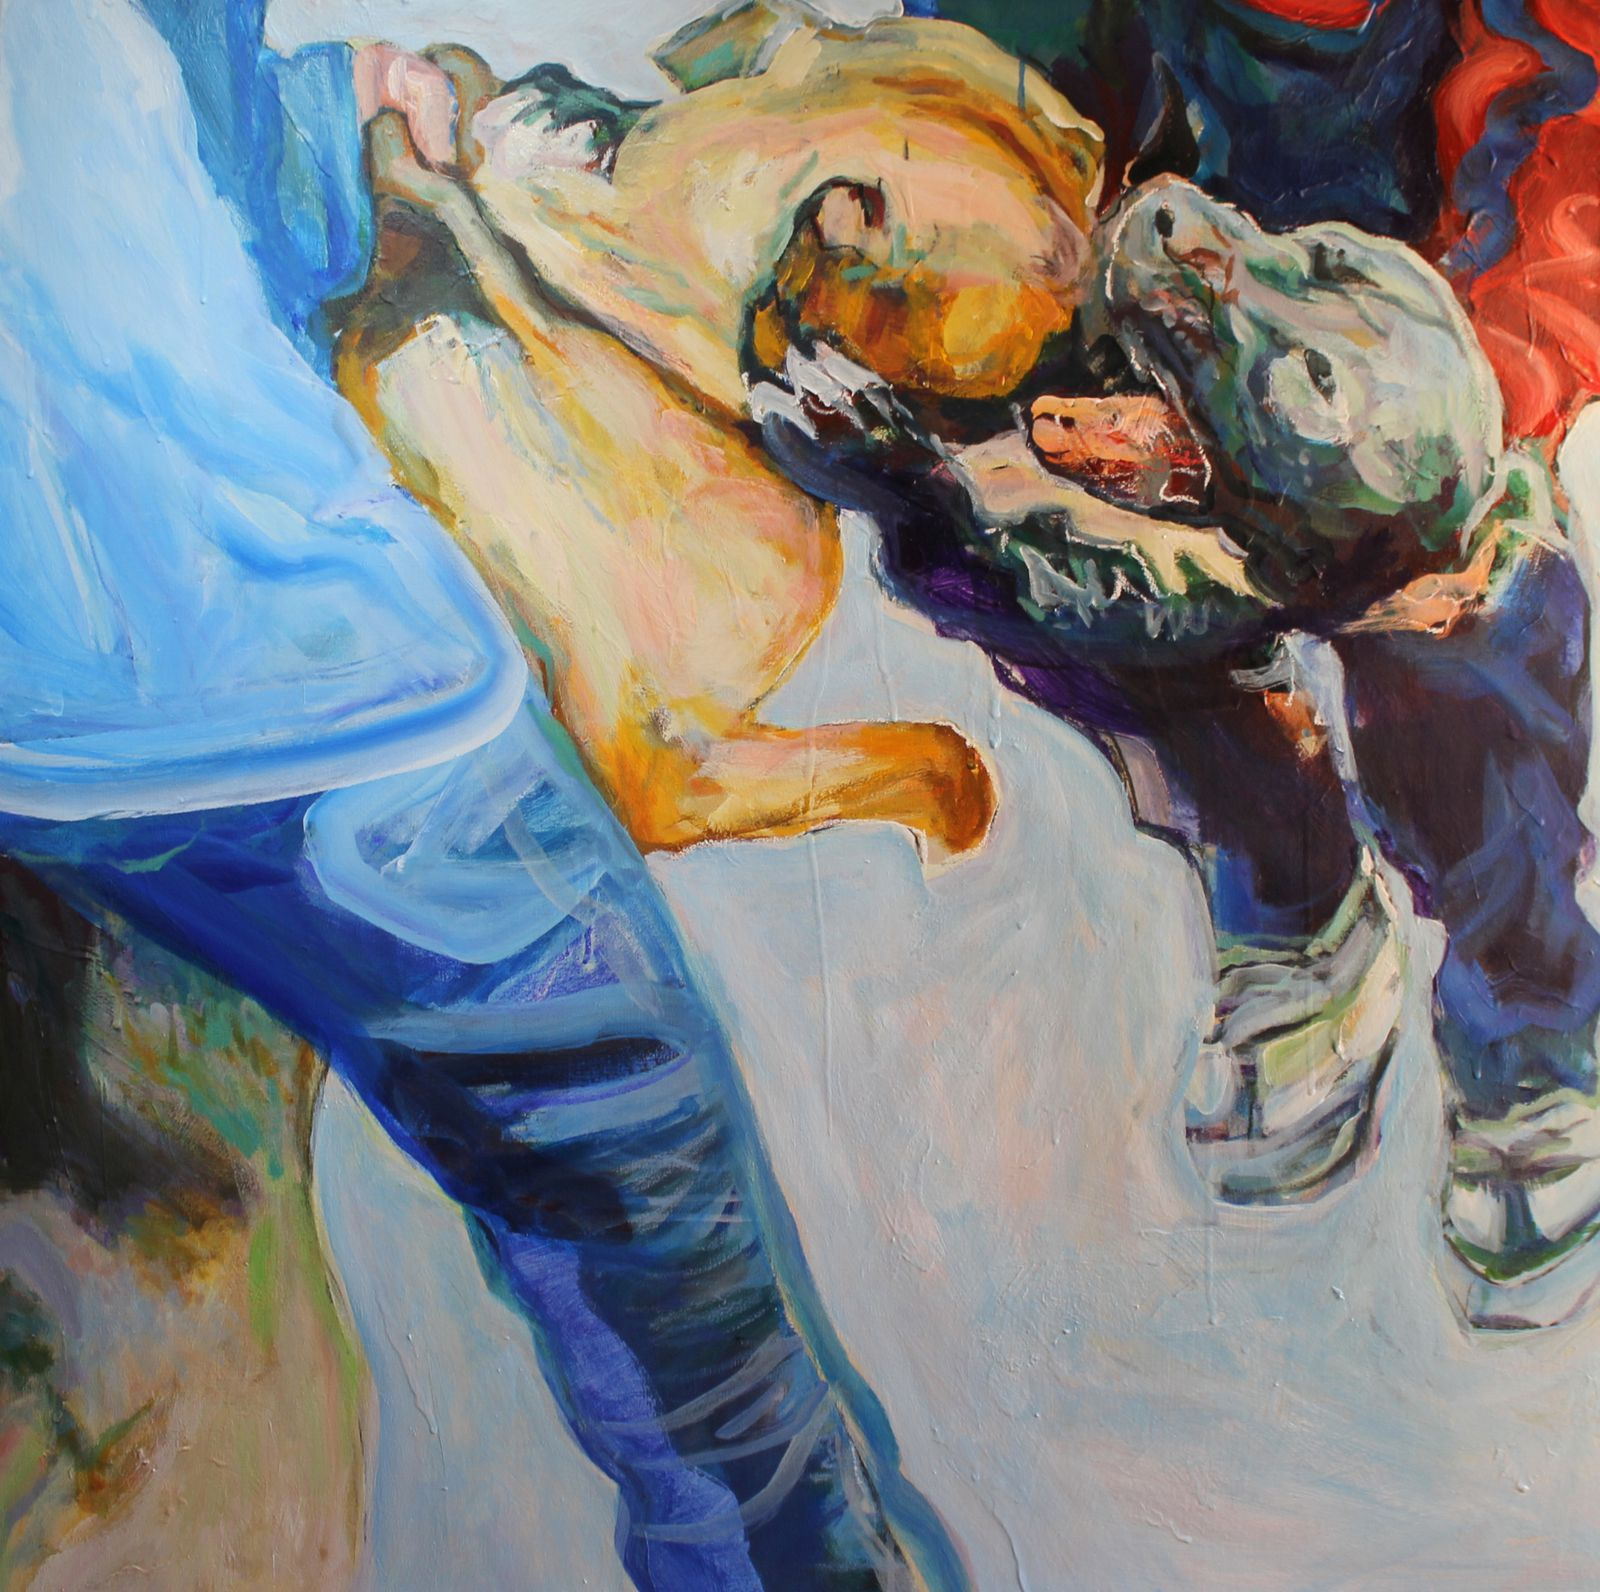 Dog fighting 3. 100X100cm. Acrylique sur toile. 2011. Collection Artothèque de Draguignan